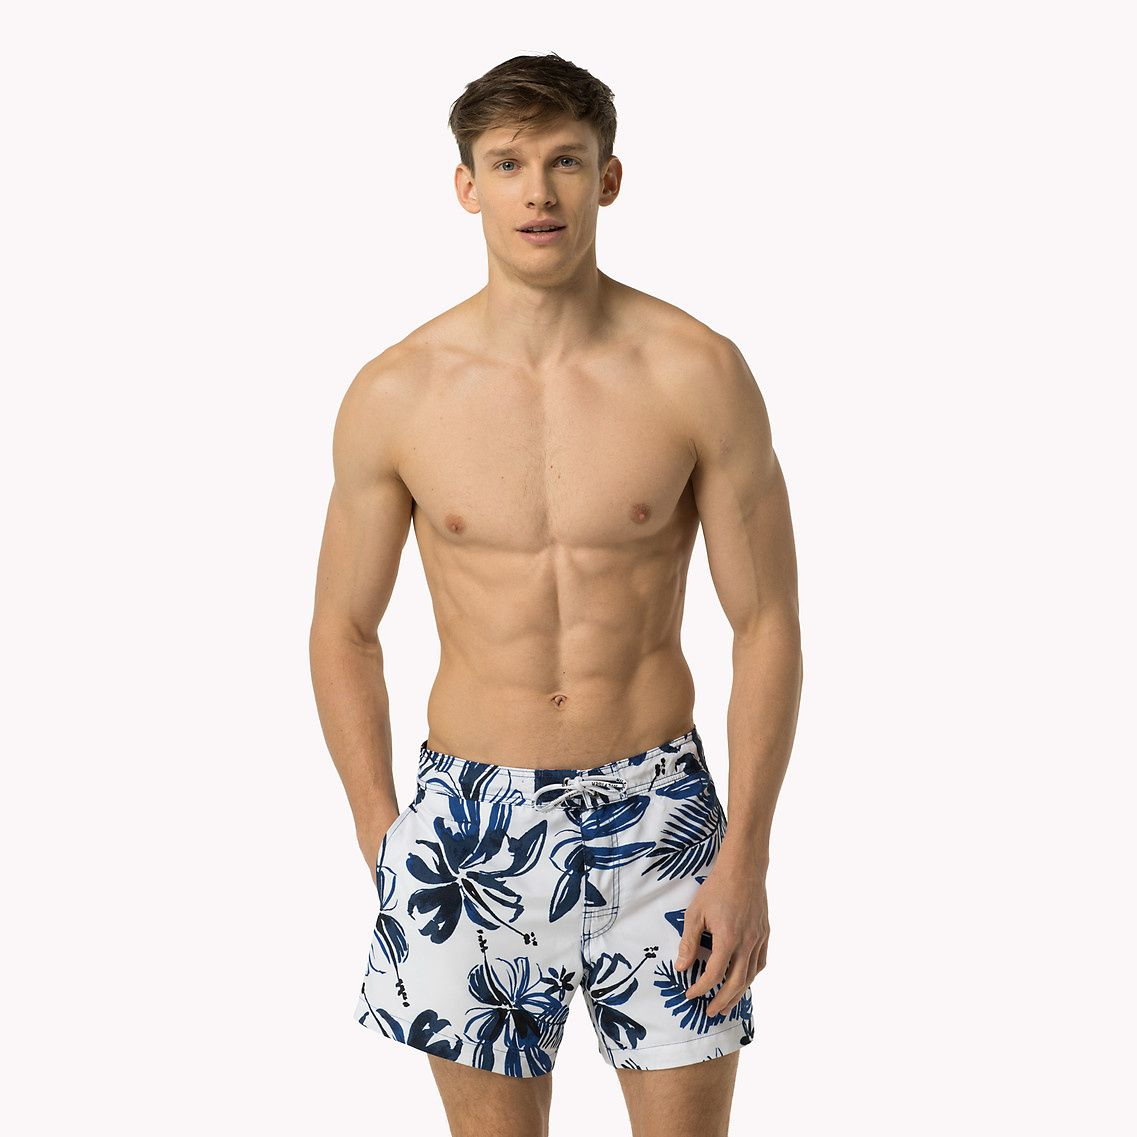 94511819a0343 Shop the white printed swim shorts from the latest Tommy Hilfiger swimwear  collection for men. Free returns & delivery over 50£. 8719255319738